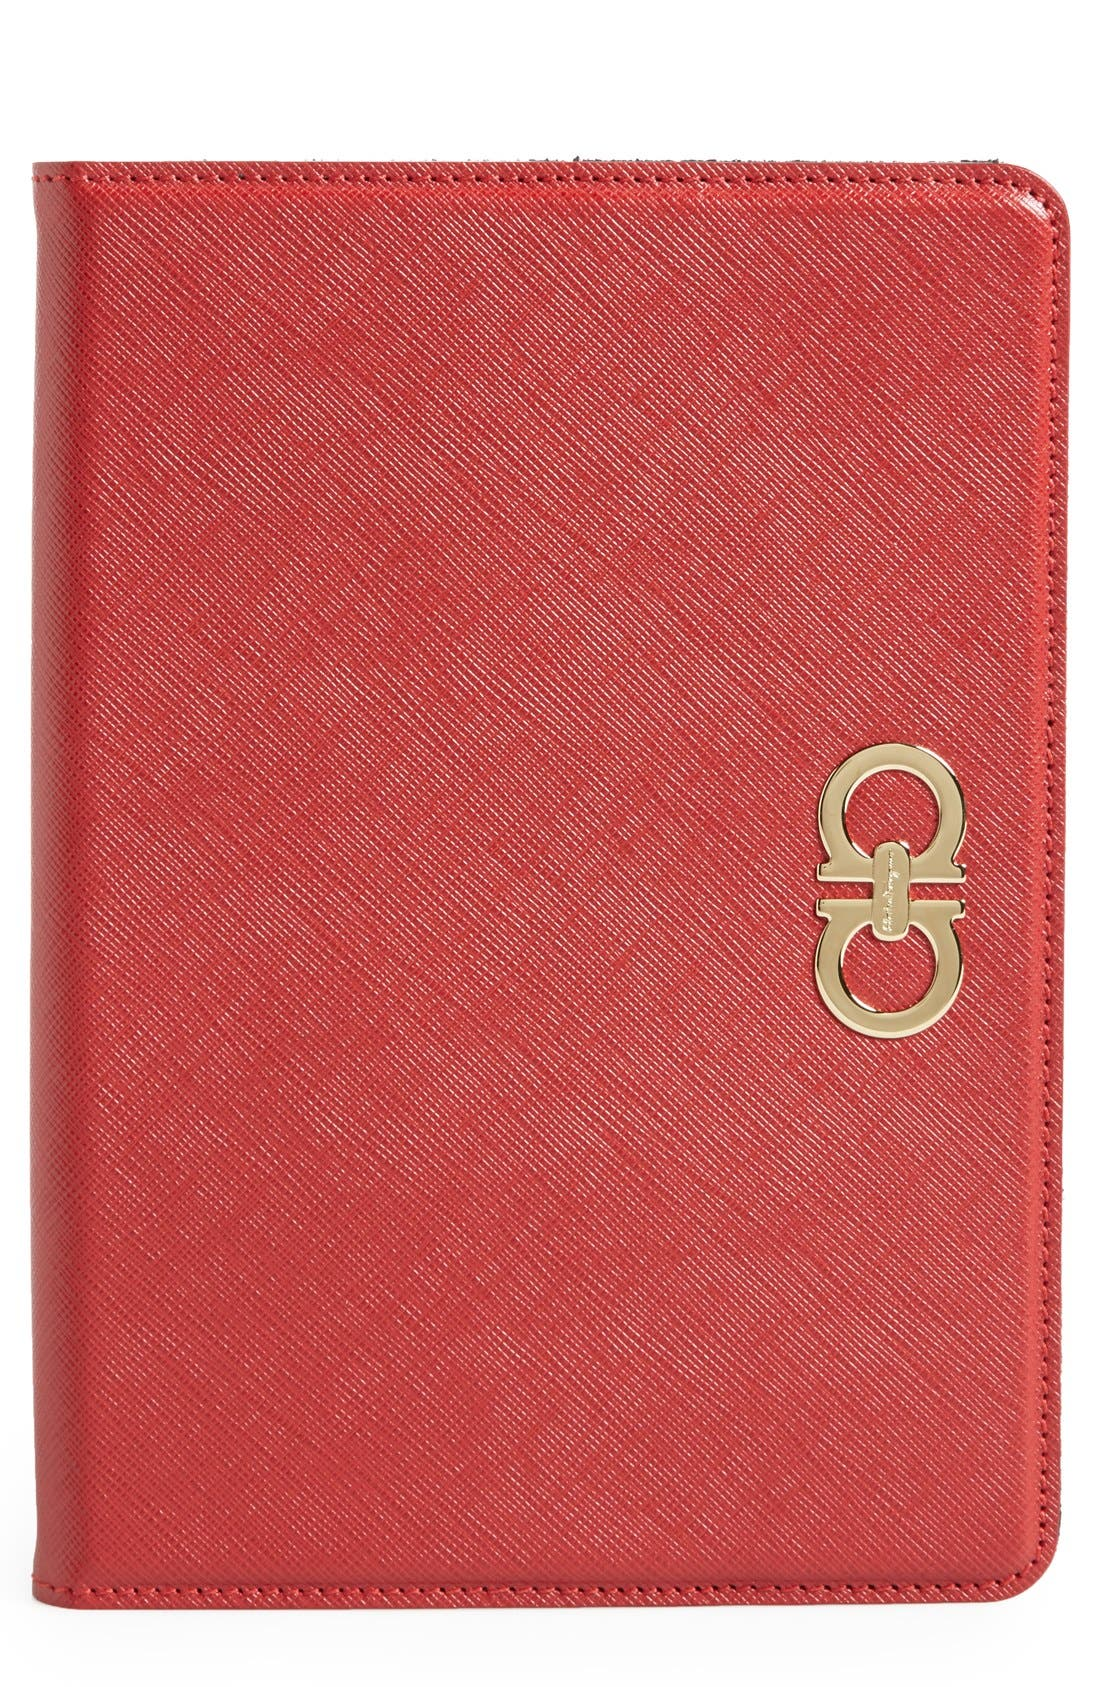 Main Image - Salvatore Ferragamo 'Gancini' Leather iPad mini Case